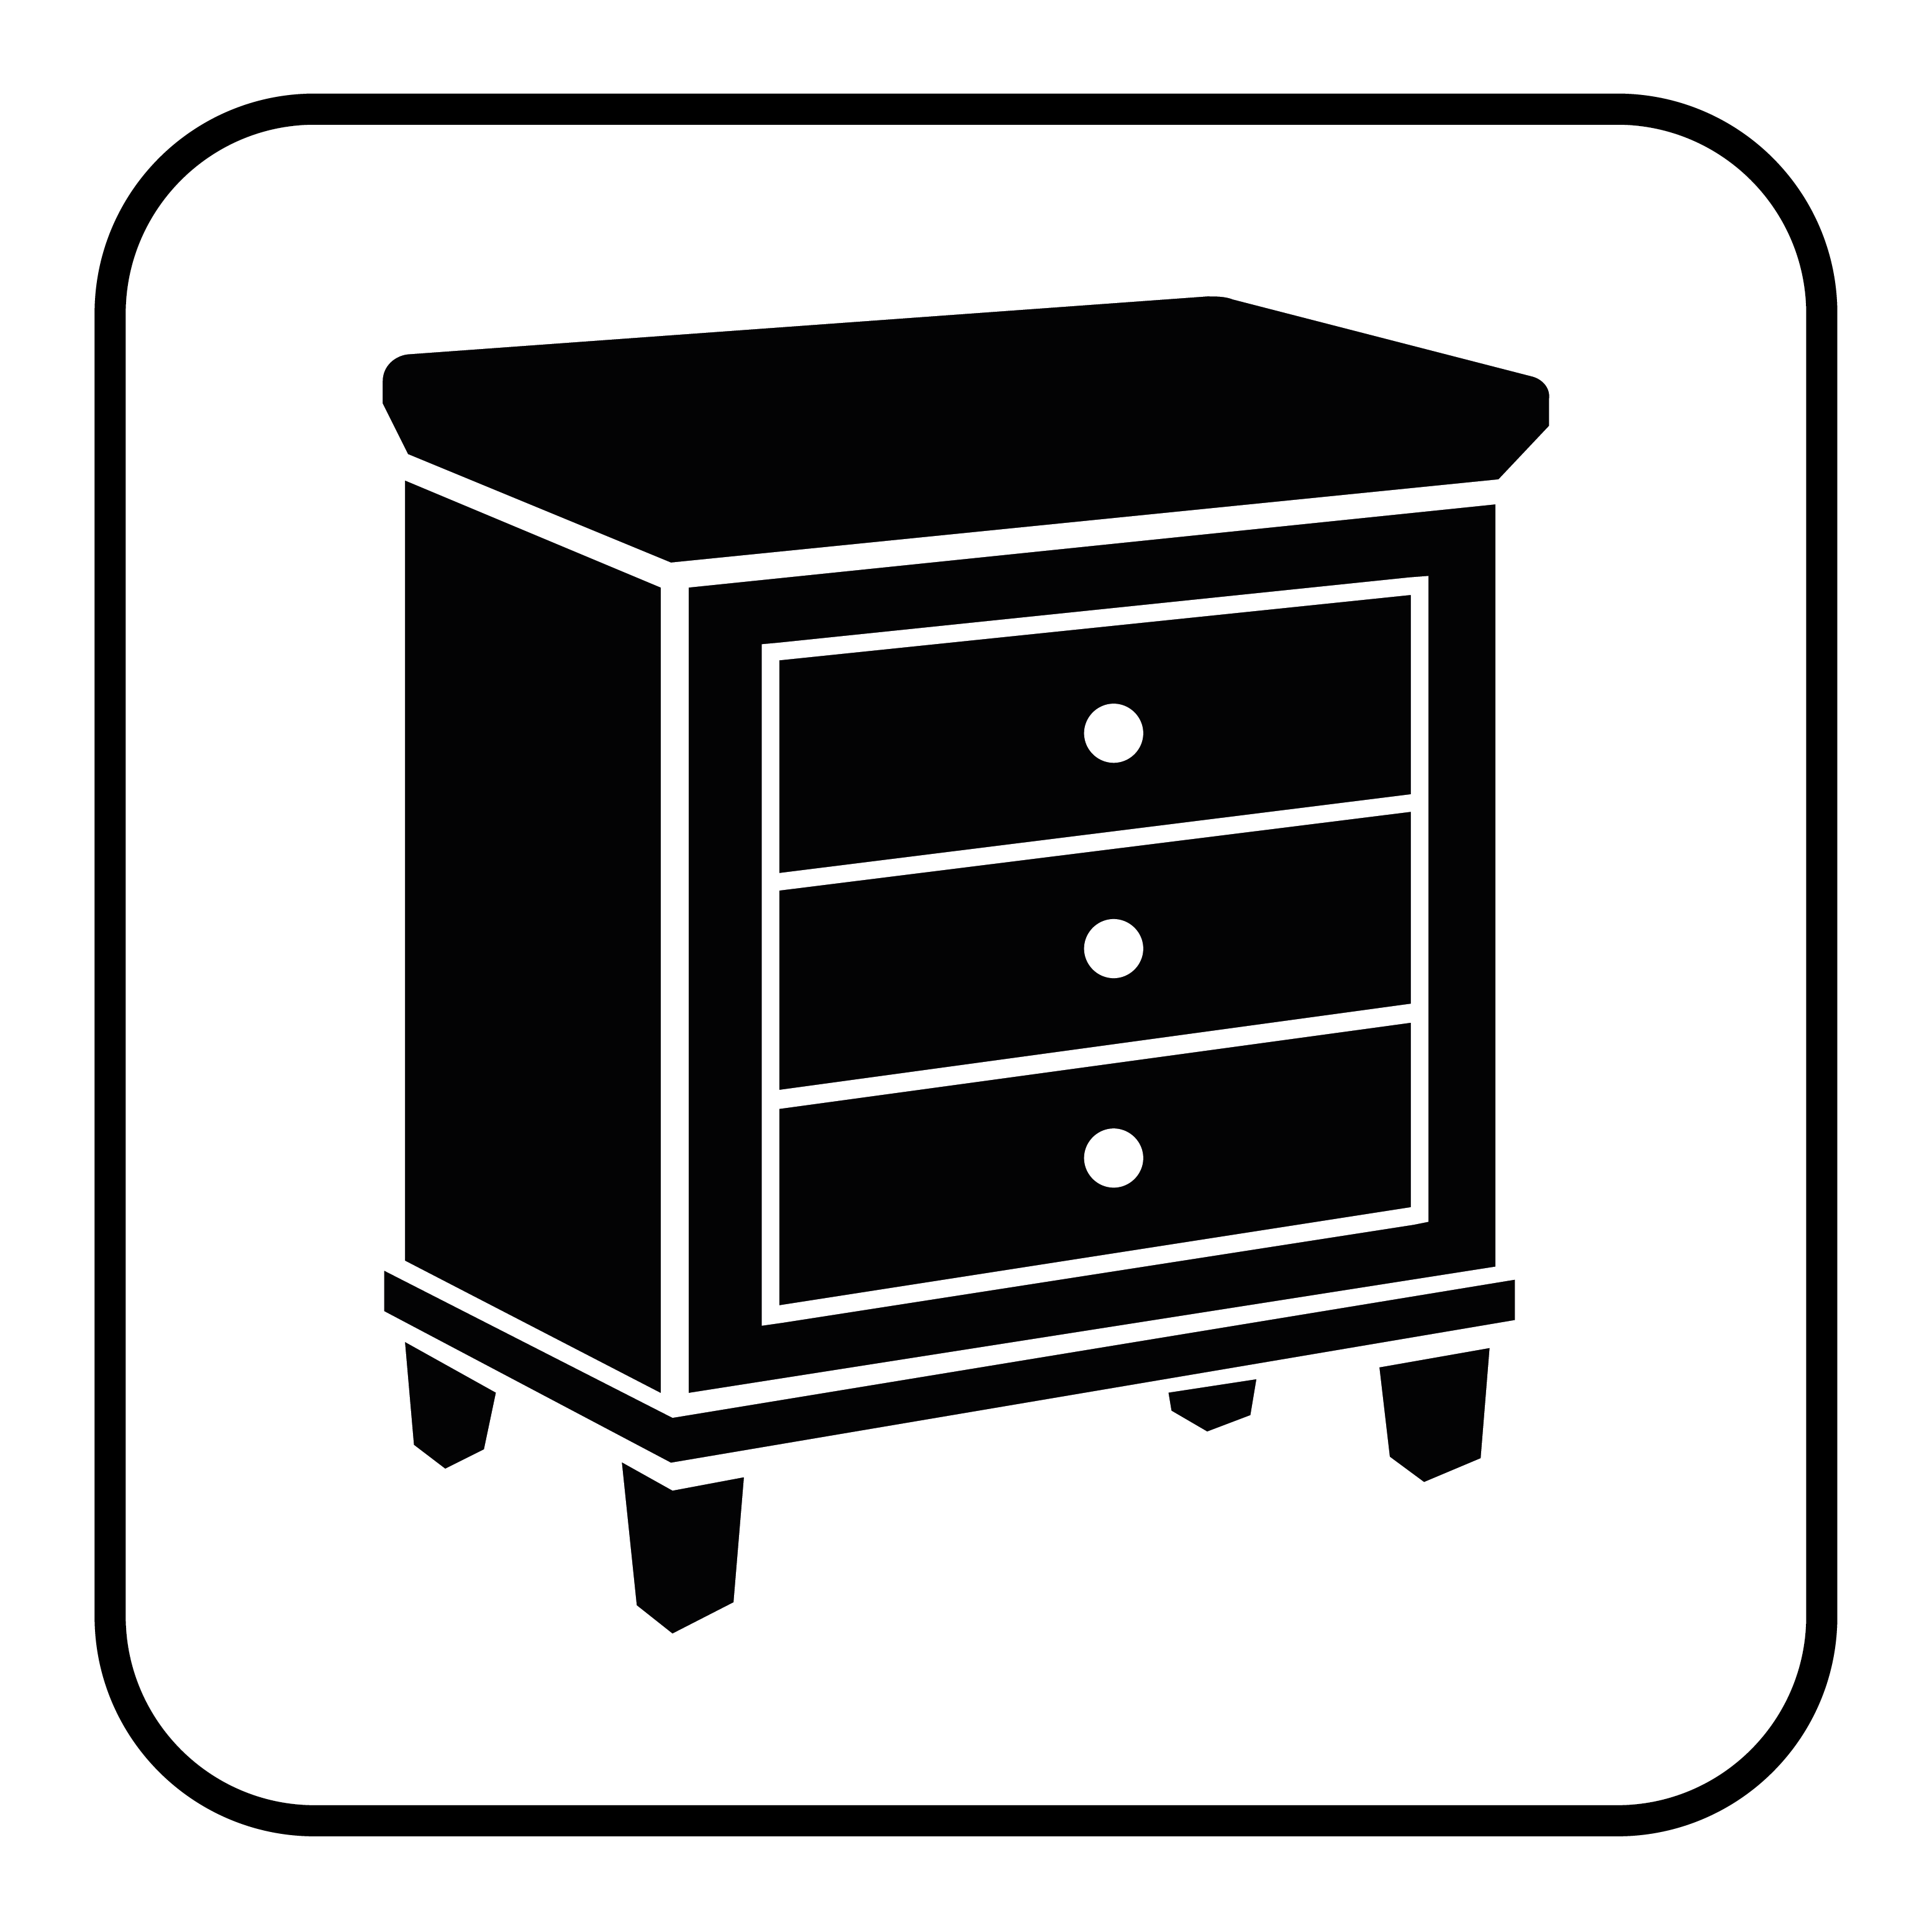 Antique furniture icon